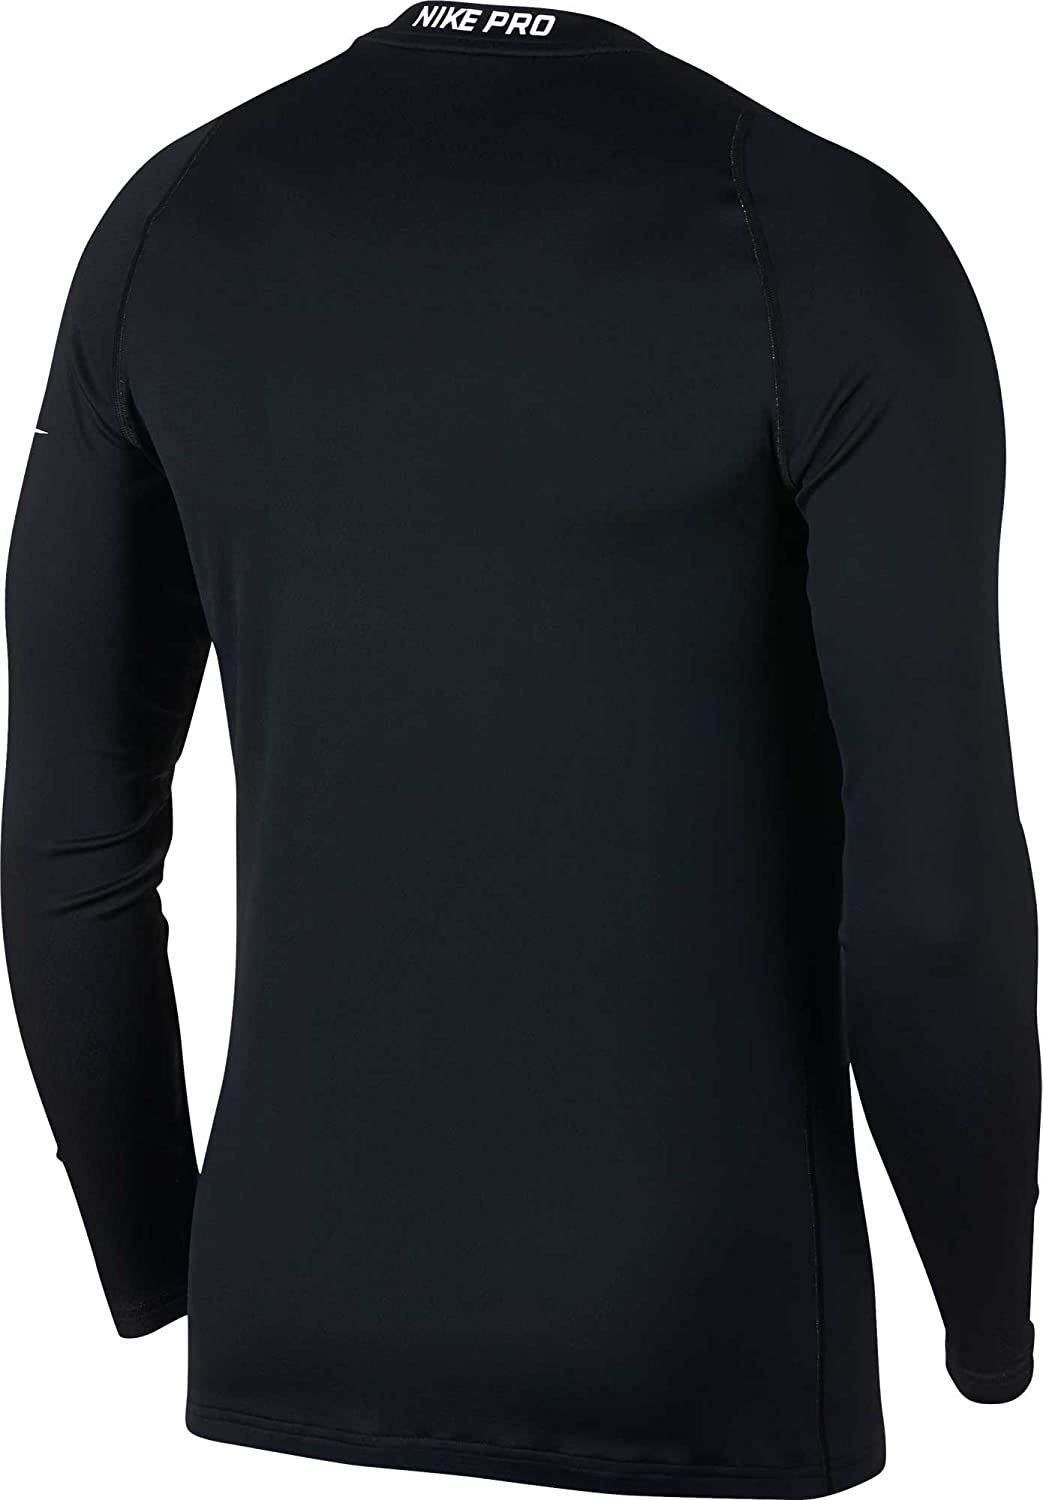 Nike Pro Mens Colorburst 2 Long Sleeve Shirt Blk Combat Base Layer Sleeves Atmosphere Grey White Xl Sports Outdoors